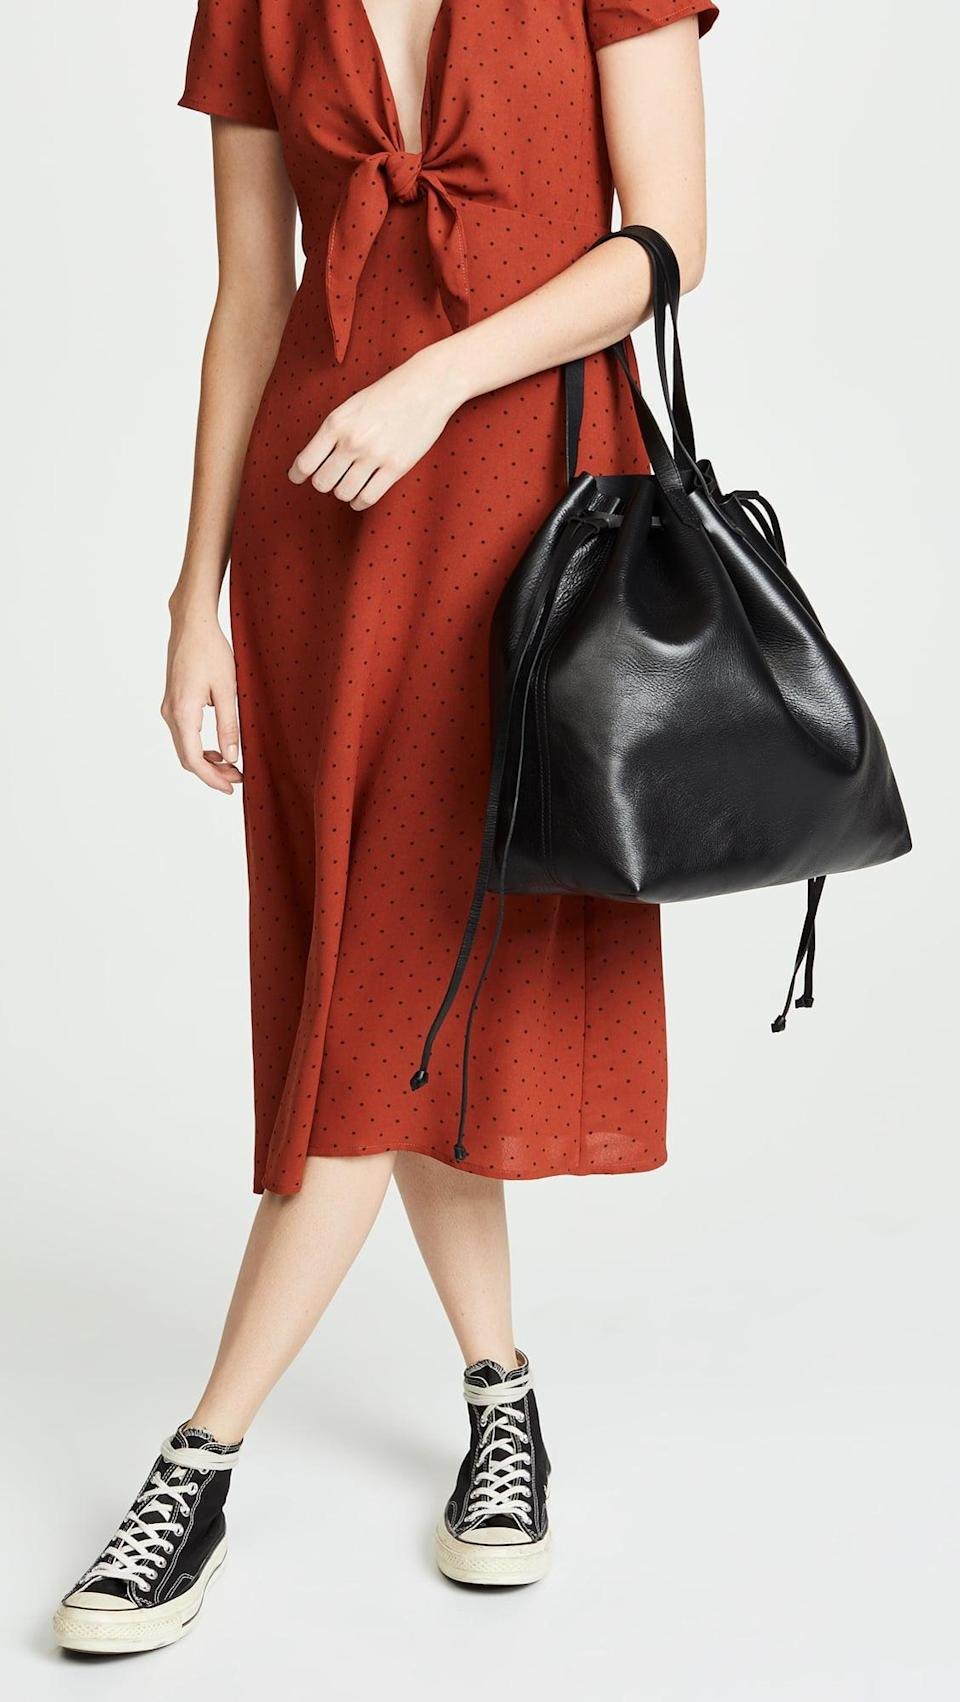 """<p>This <a href=""""https://www.popsugar.com/buy/Madewell-Drawstring-Transport-Tote-537115?p_name=Madewell%20The%20Drawstring%20Transport%20Tote&retailer=shopbop.com&pid=537115&price=178&evar1=fab%3Aus&evar9=45623846&evar98=https%3A%2F%2Fwww.popsugar.com%2Ffashion%2Fphoto-gallery%2F45623846%2Fimage%2F47066454%2FMadewell-Drawstring-Transport-Tote&list1=shopping%2Caccessories%2Cbags%2Cworkwear&prop13=mobile&pdata=1"""" class=""""link rapid-noclick-resp"""" rel=""""nofollow noopener"""" target=""""_blank"""" data-ylk=""""slk:Madewell The Drawstring Transport Tote"""">Madewell The Drawstring Transport Tote</a> ($178) is so easy to carry.</p>"""